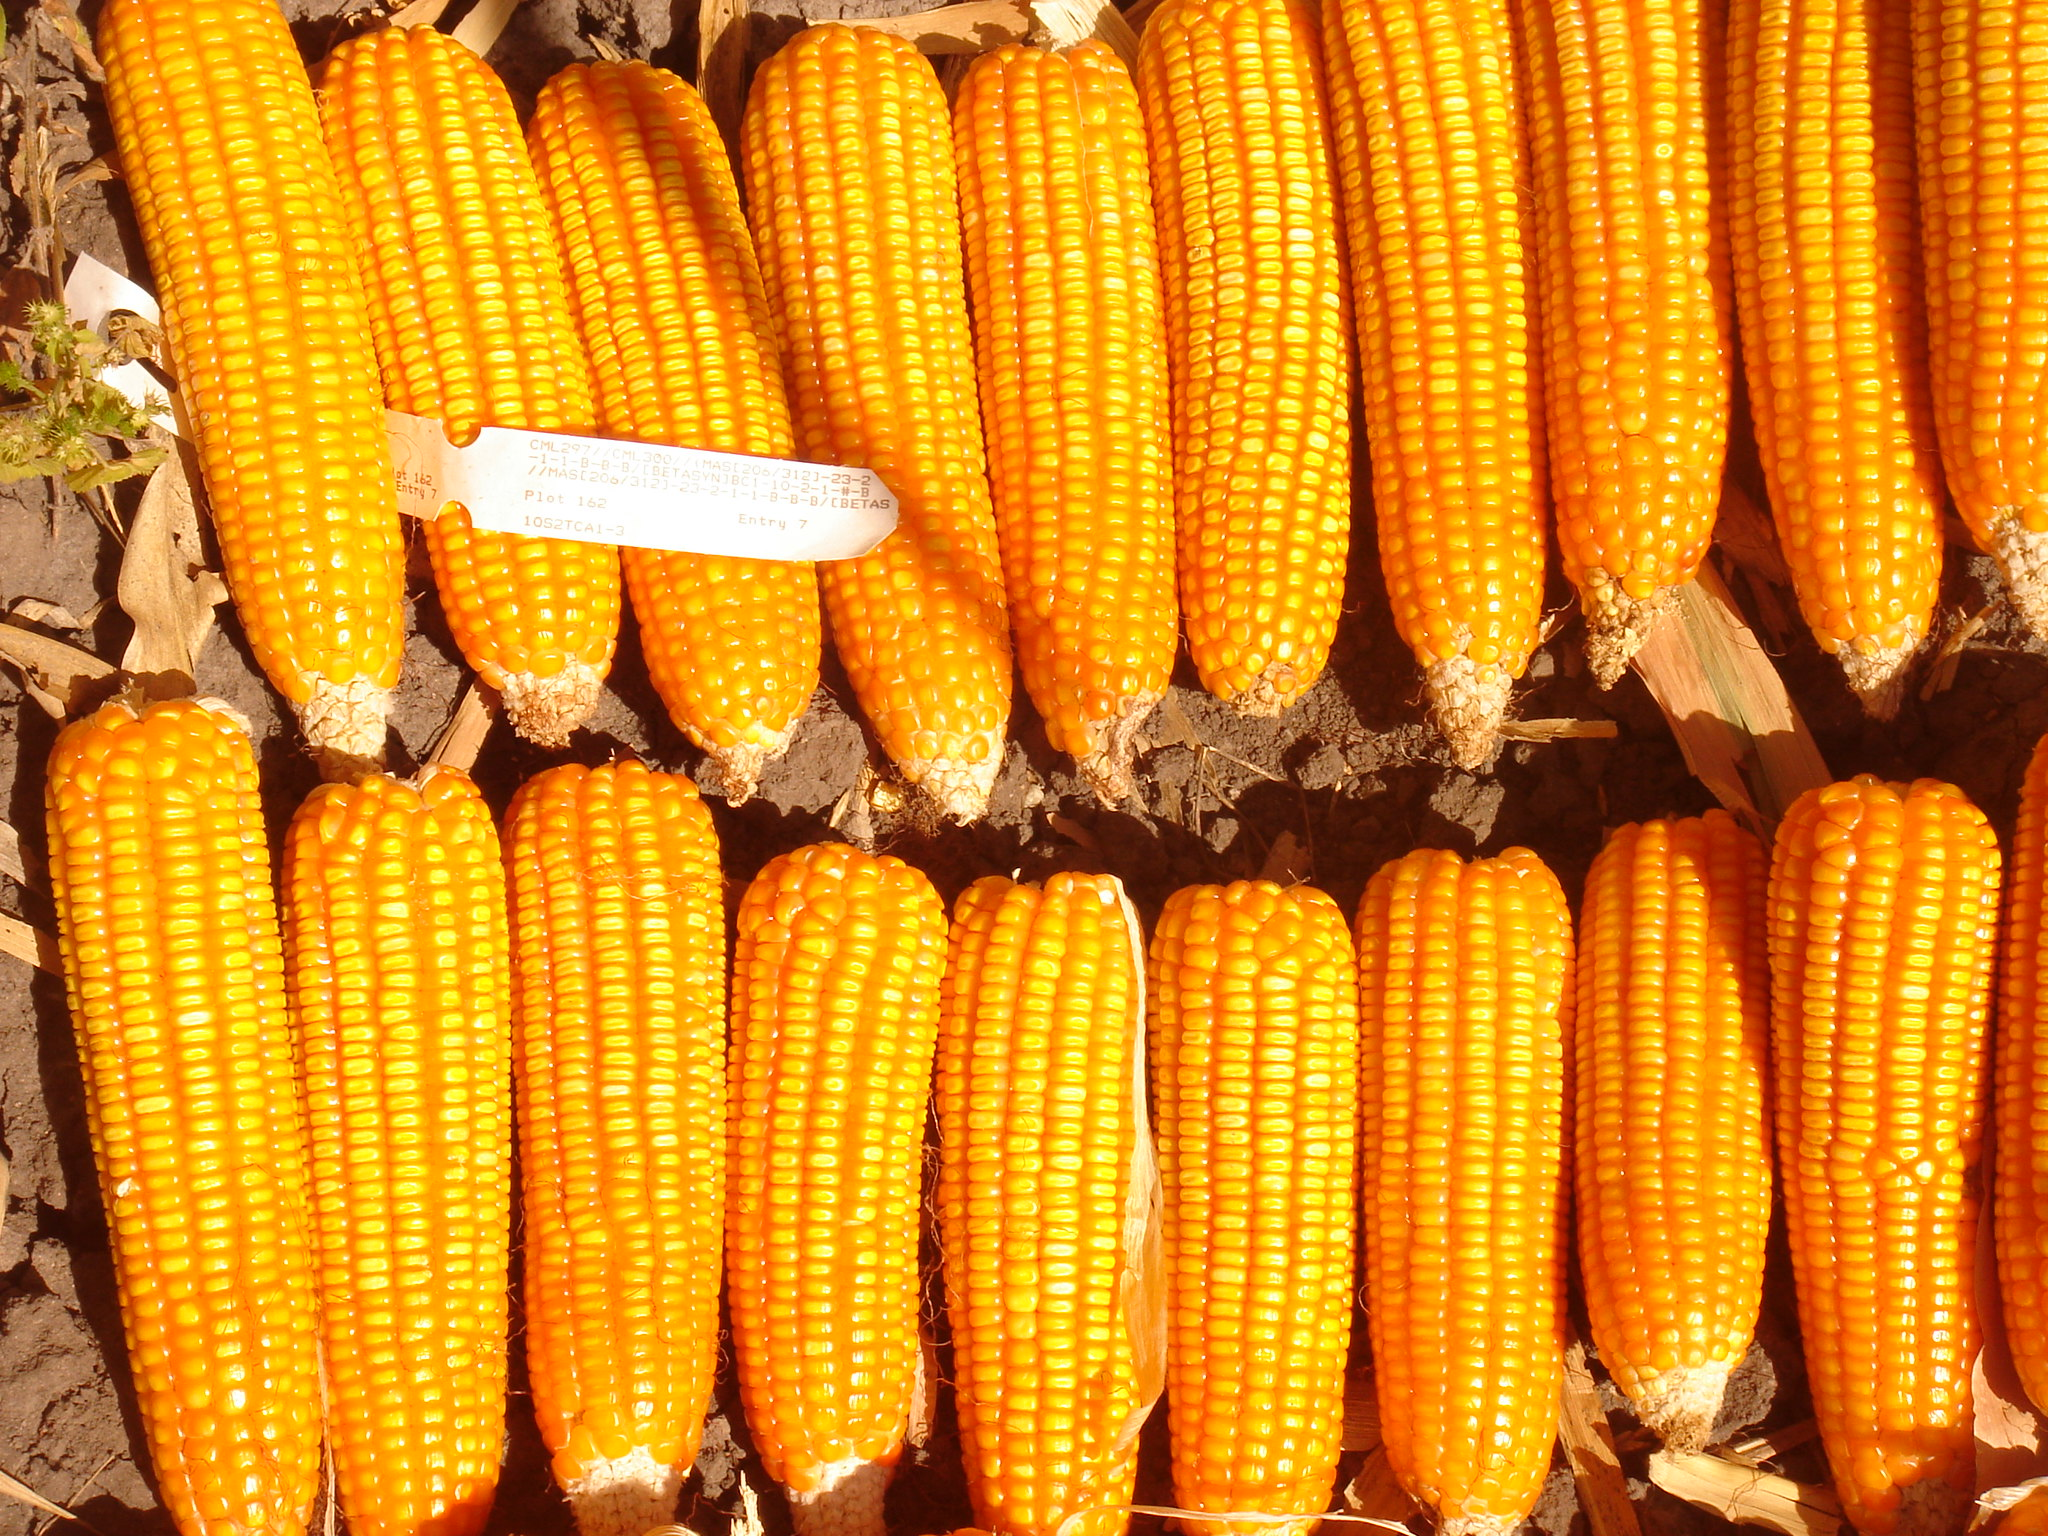 An experimental line of provitamin A-enriched orange maize is harvested in Zambia. (Photo: CIMMYT)